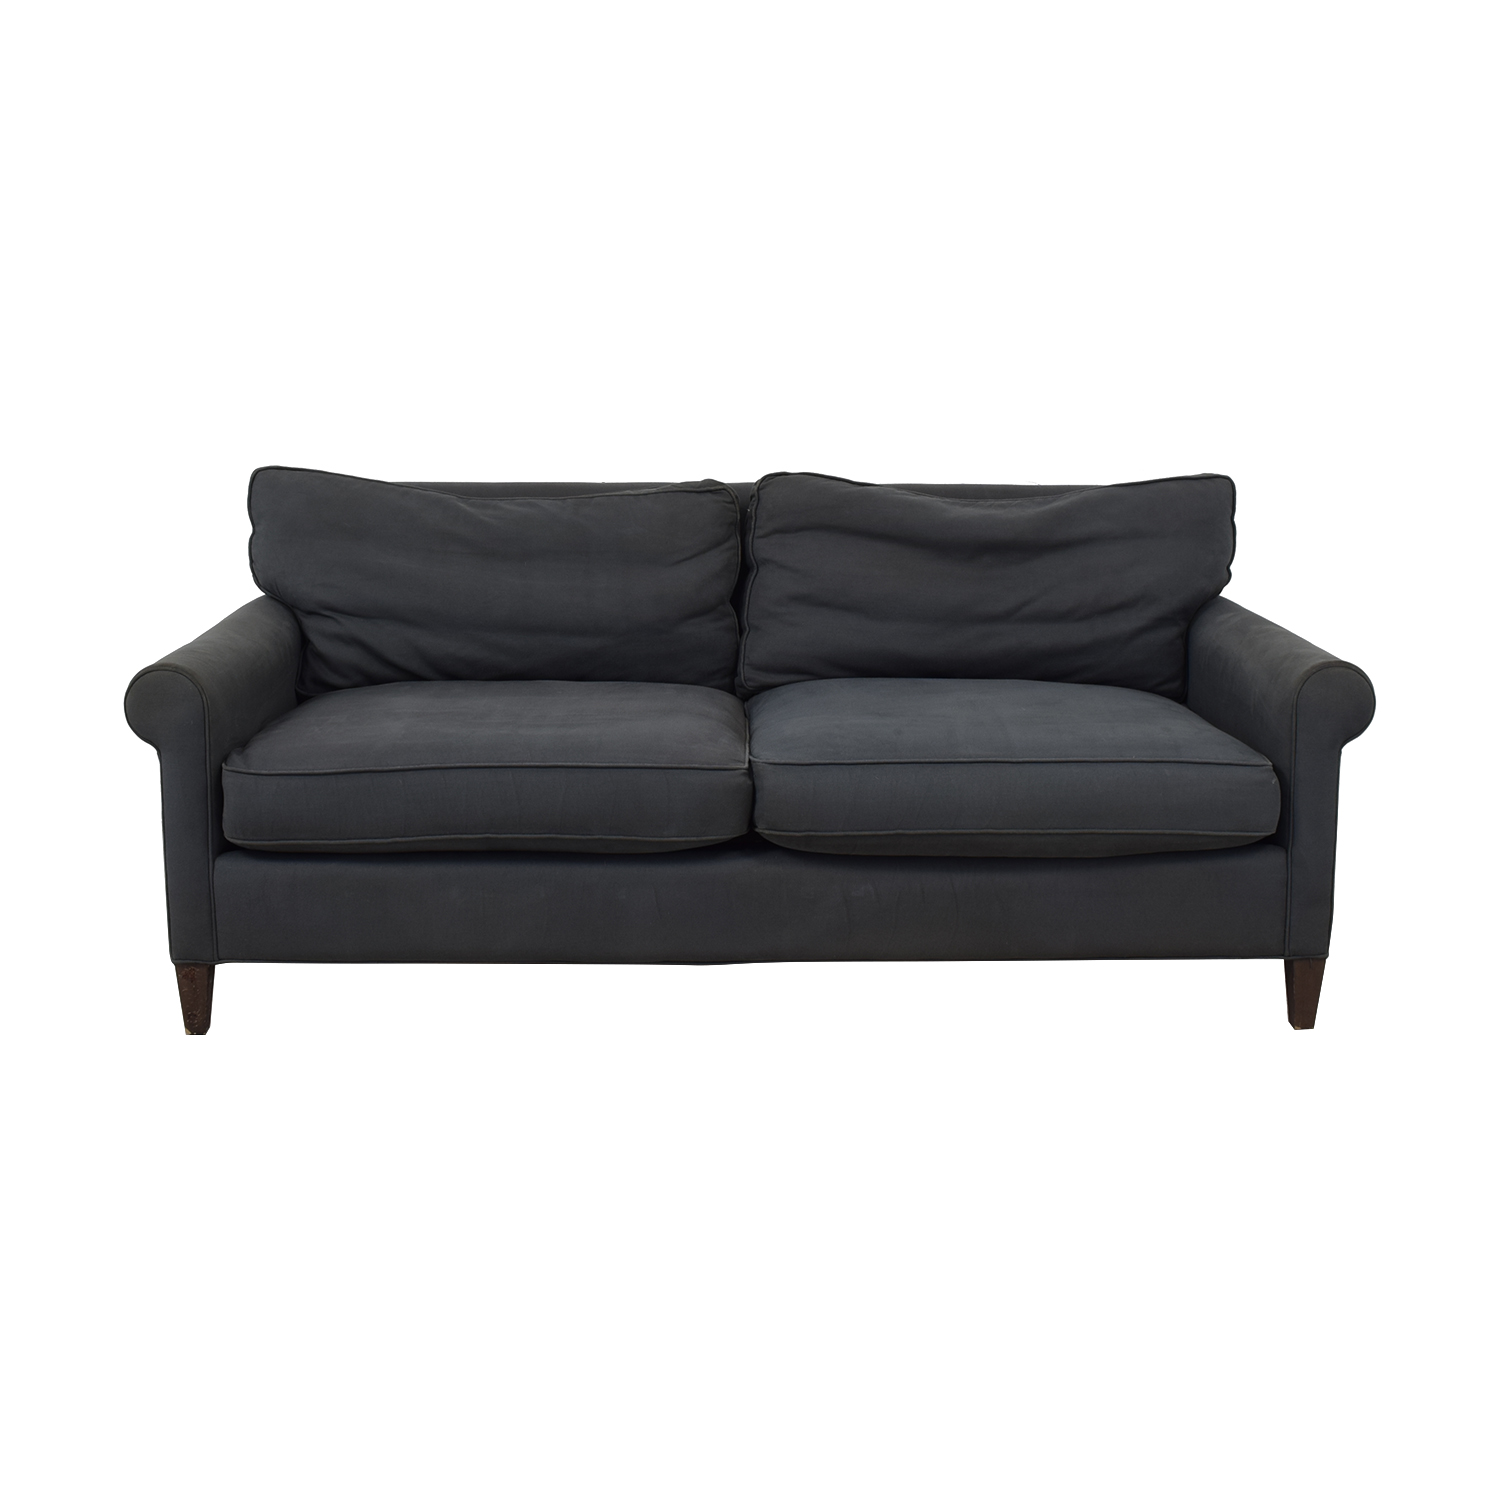 shop Crate & Barrel Crate & Barrel Montclair Apartment Sofa online